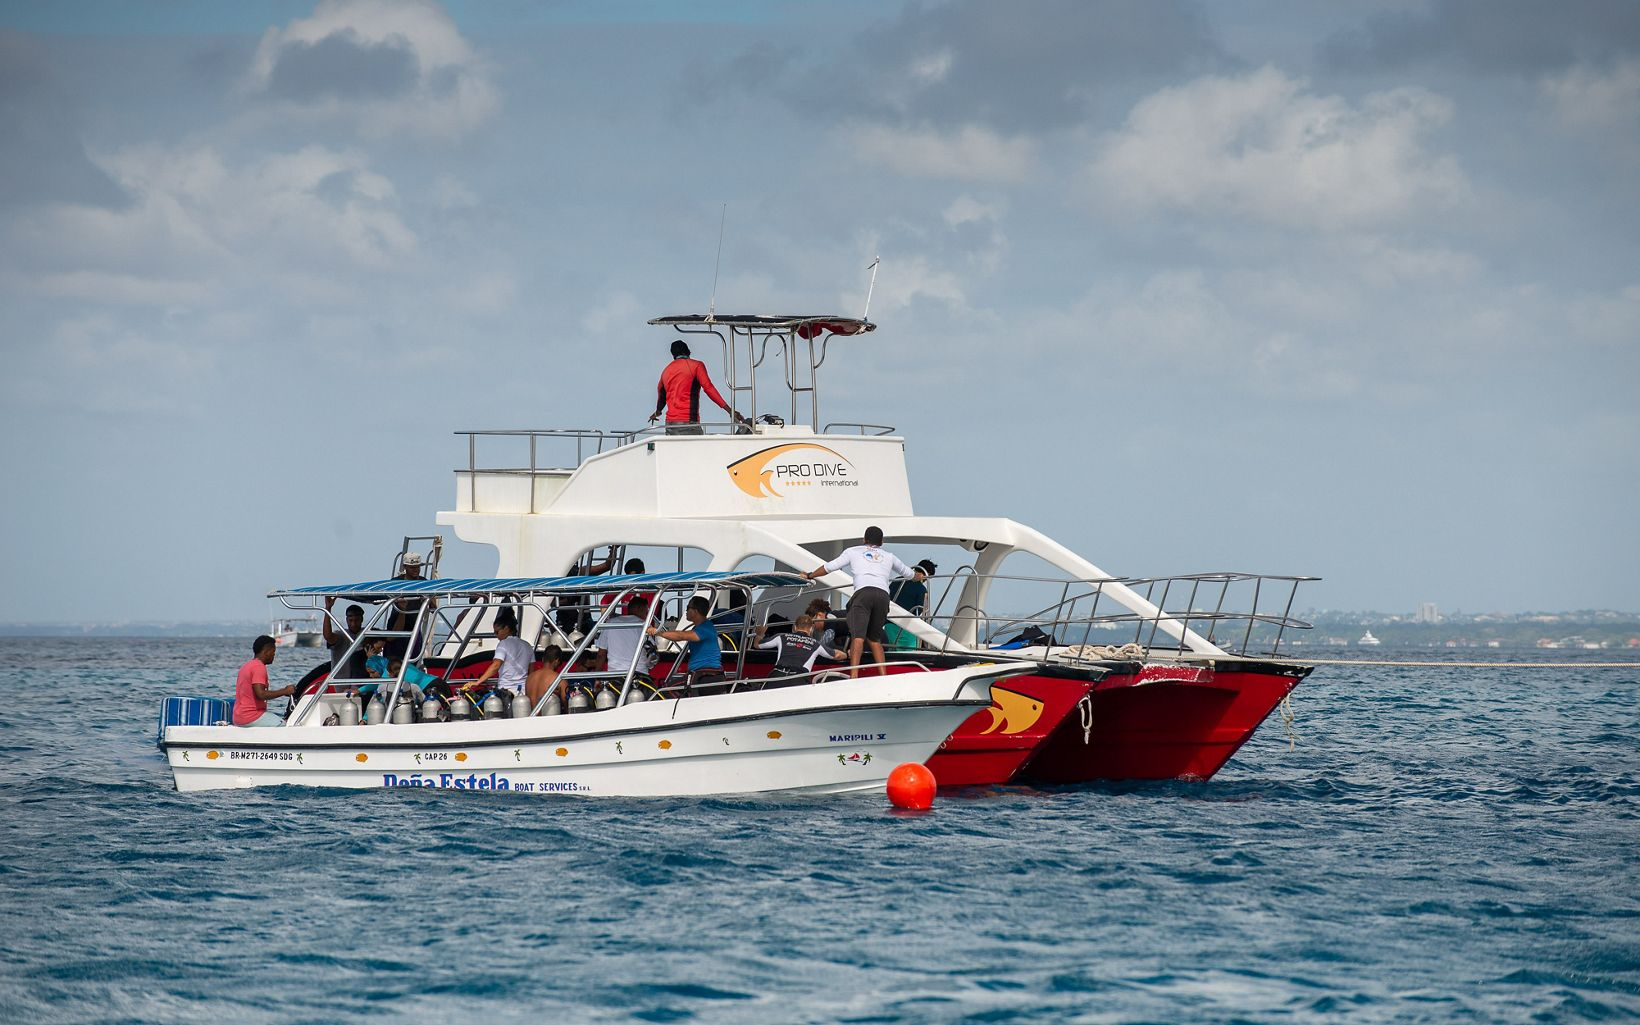 A diving boat off the coast of the Dominican Republic.